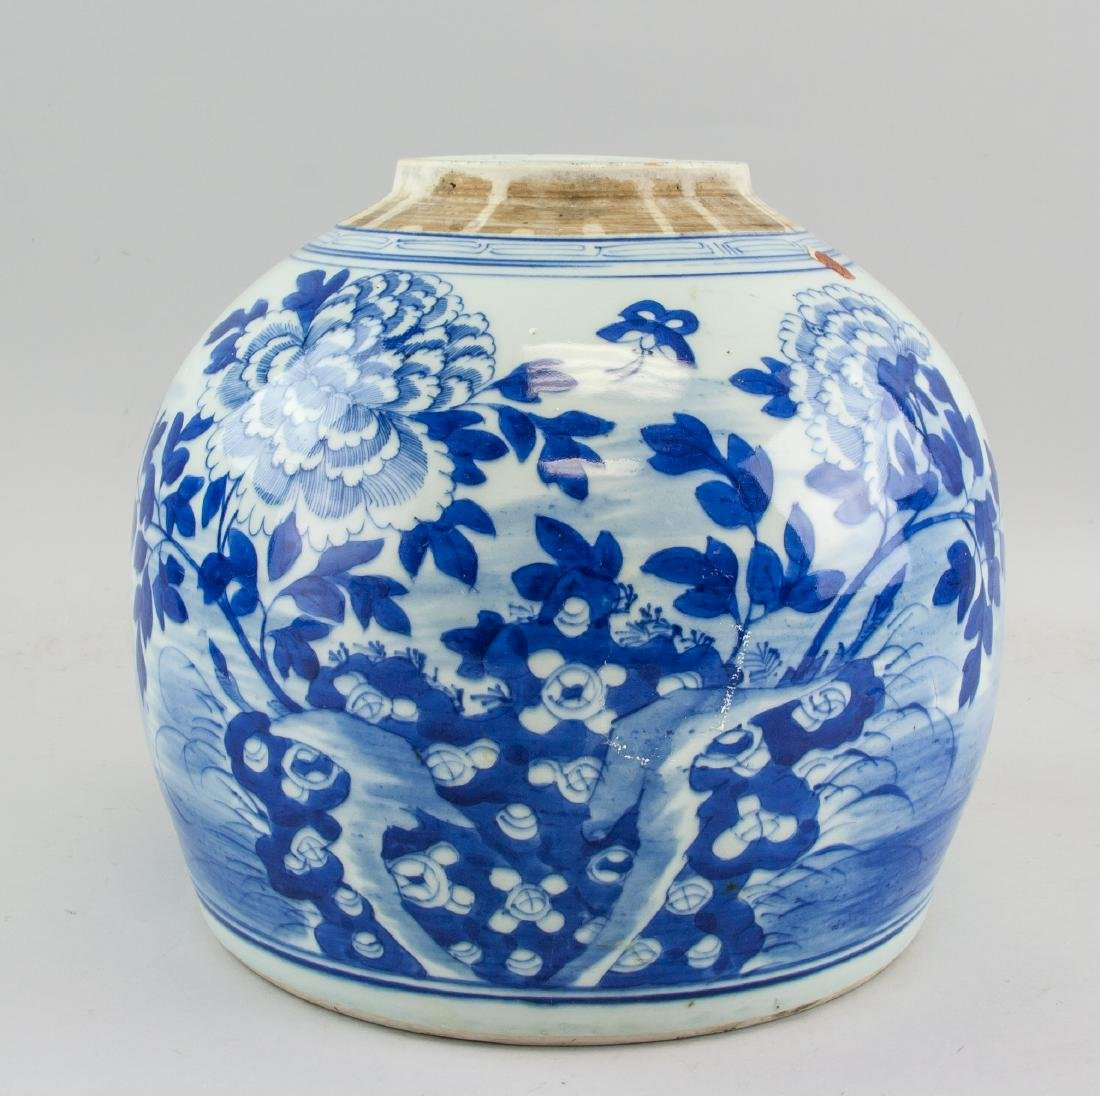 Chinese Qing Period Blue and White Porcelain Jar